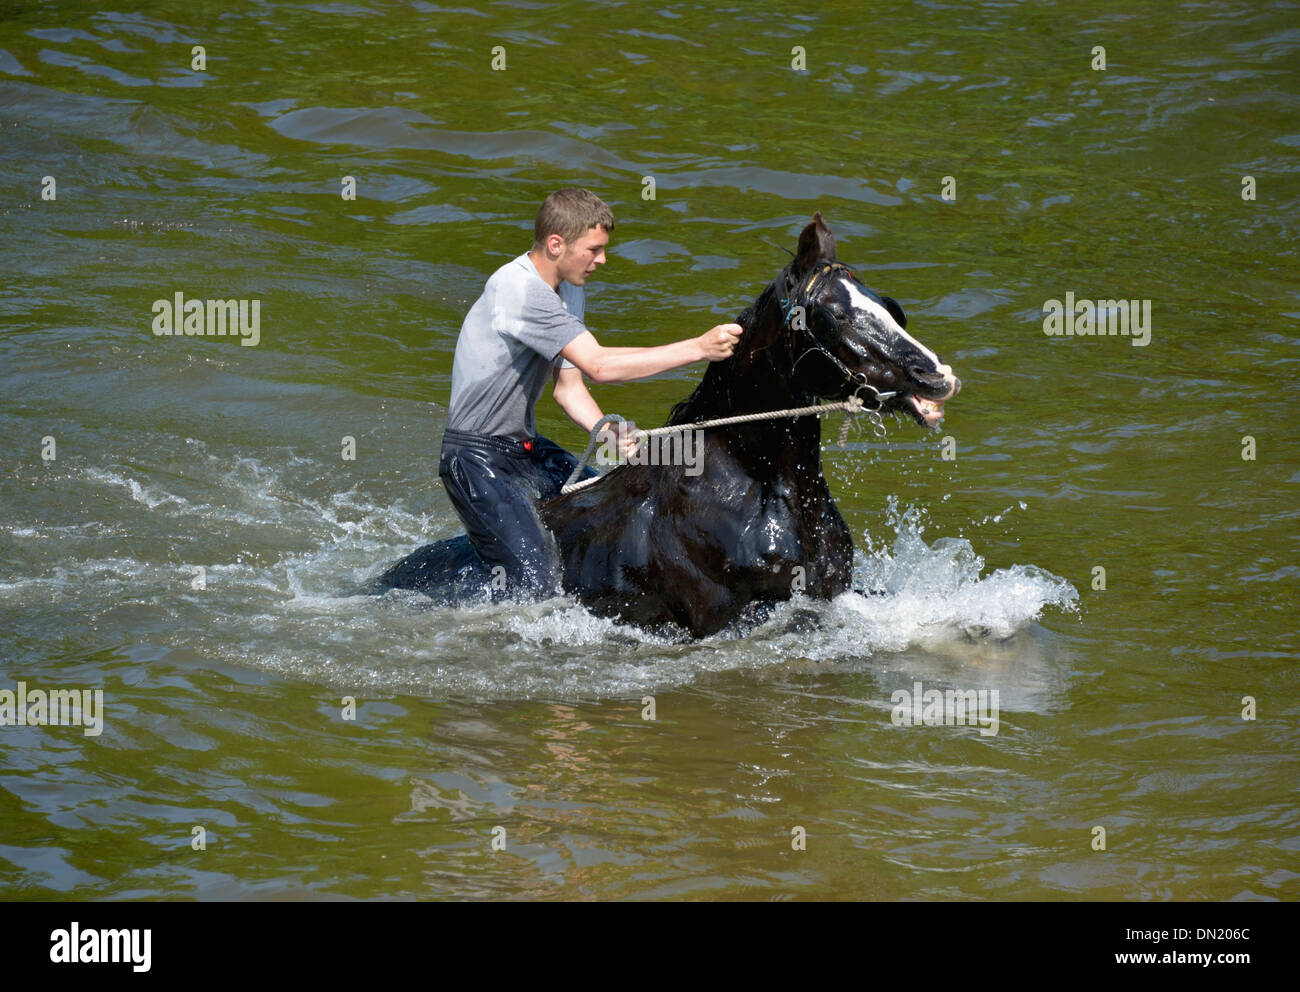 Gypsy traveller riding horse in River Eden. Appleby Horse Fair, Appleby-in-Westmorland, Cumbria, England, United Kingdom, Europe - Stock Image